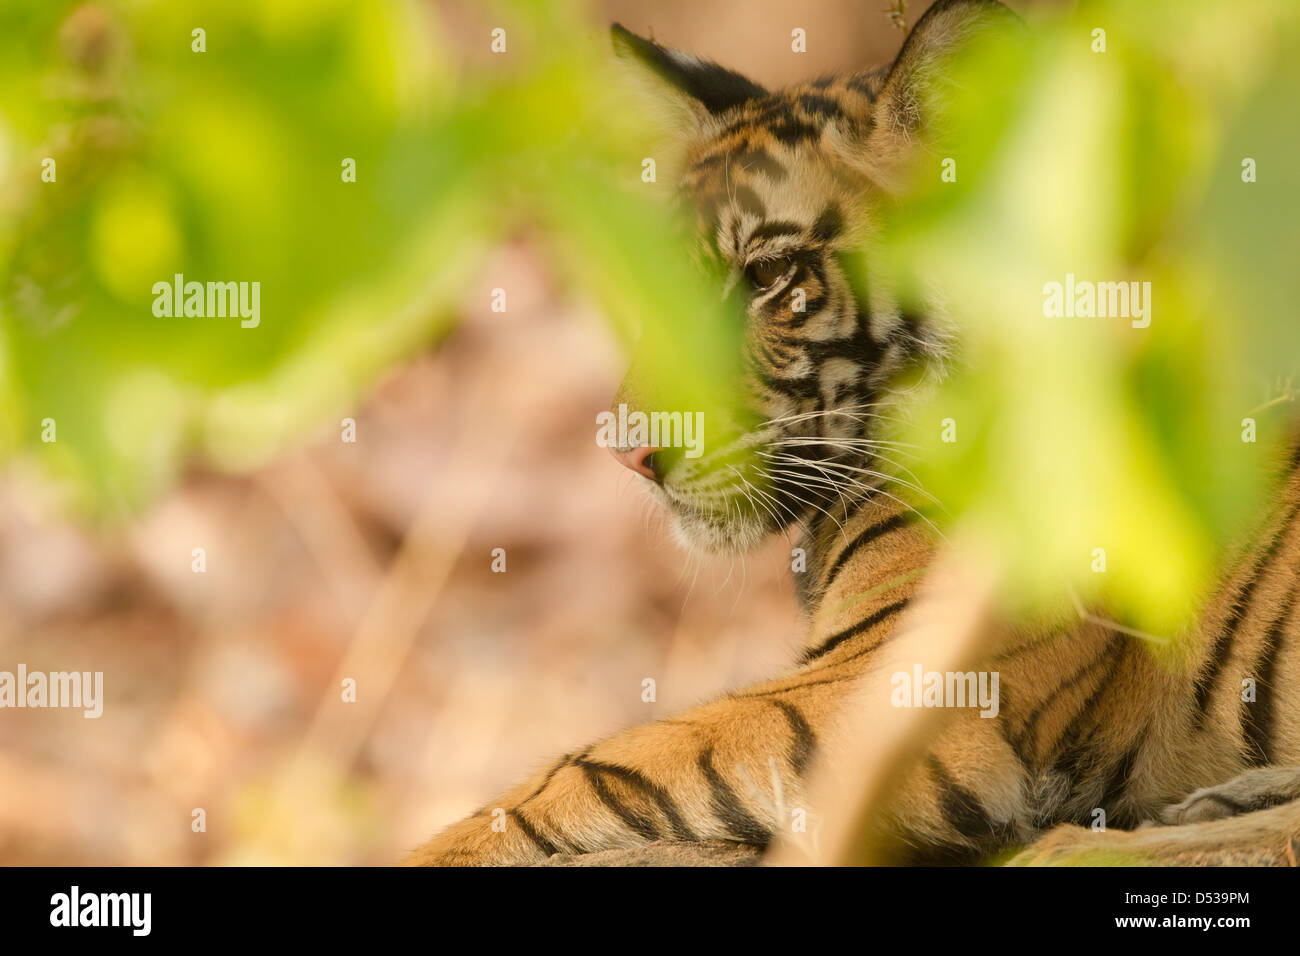 A Tiger Cub Hidden Within Foliage Stock Photo 54777932 Alamy